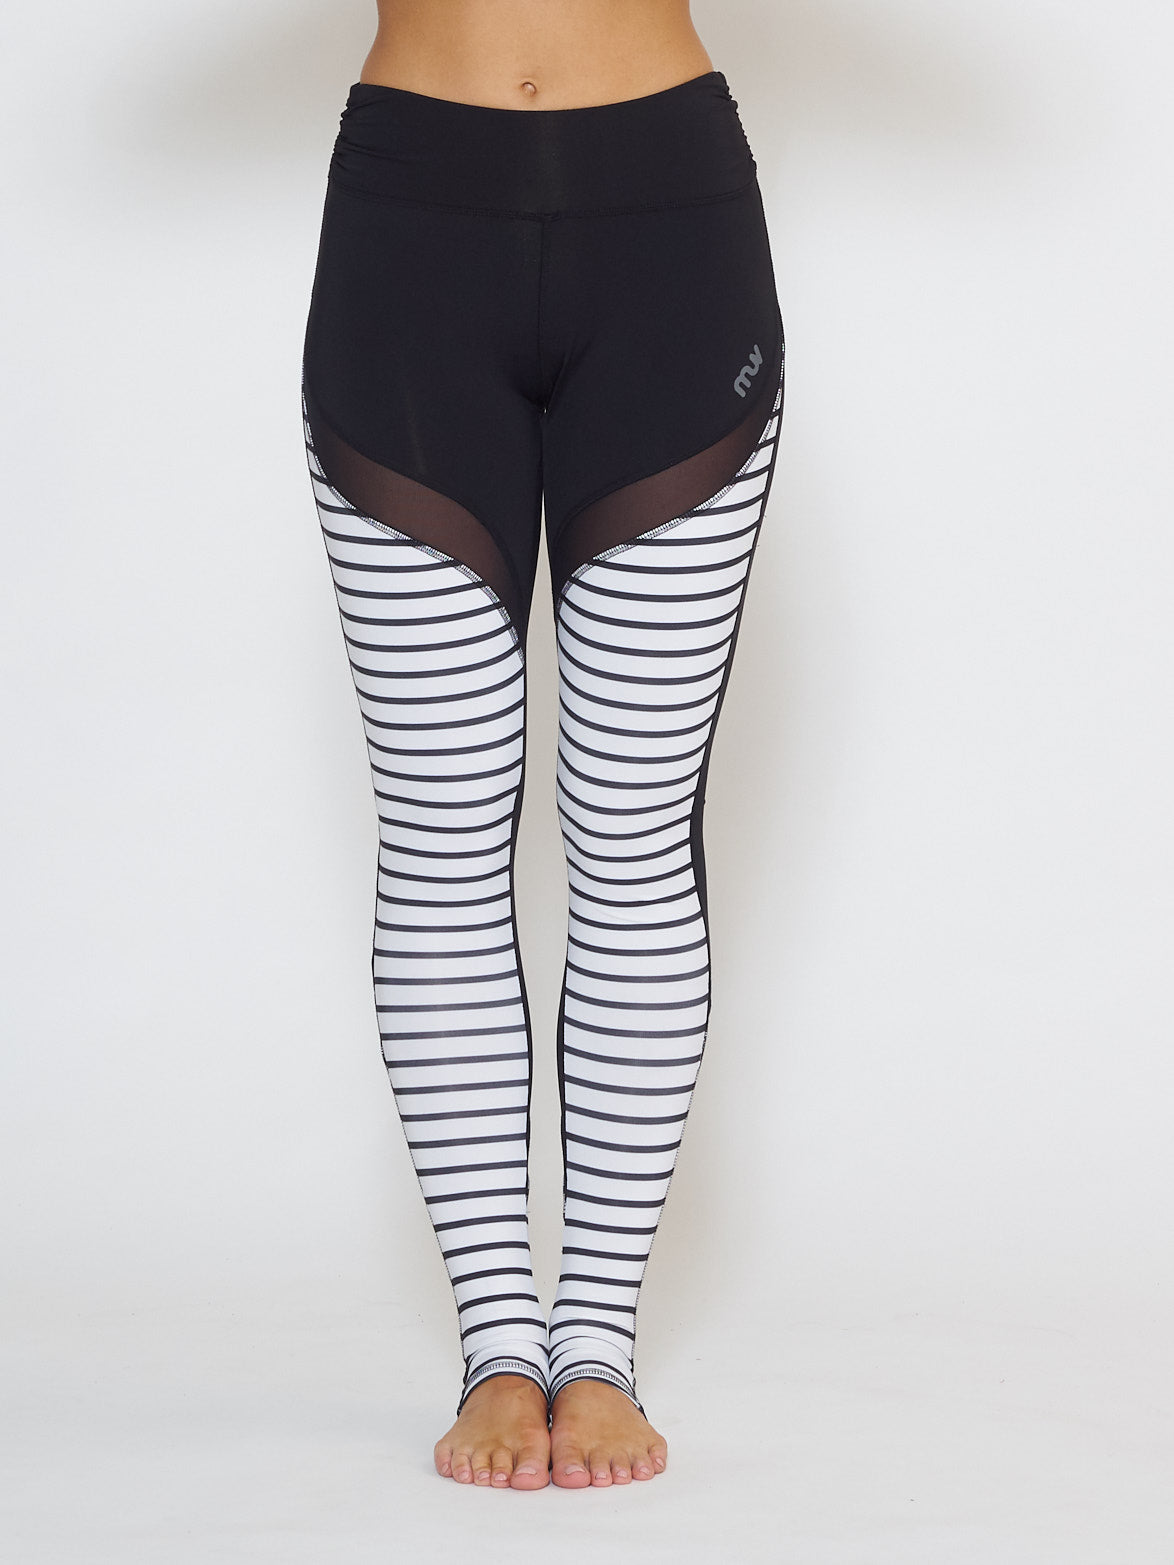 MUV Sportswear_GALE Full-Length Legging_Colour Stripe_UV Protecting Sportswear